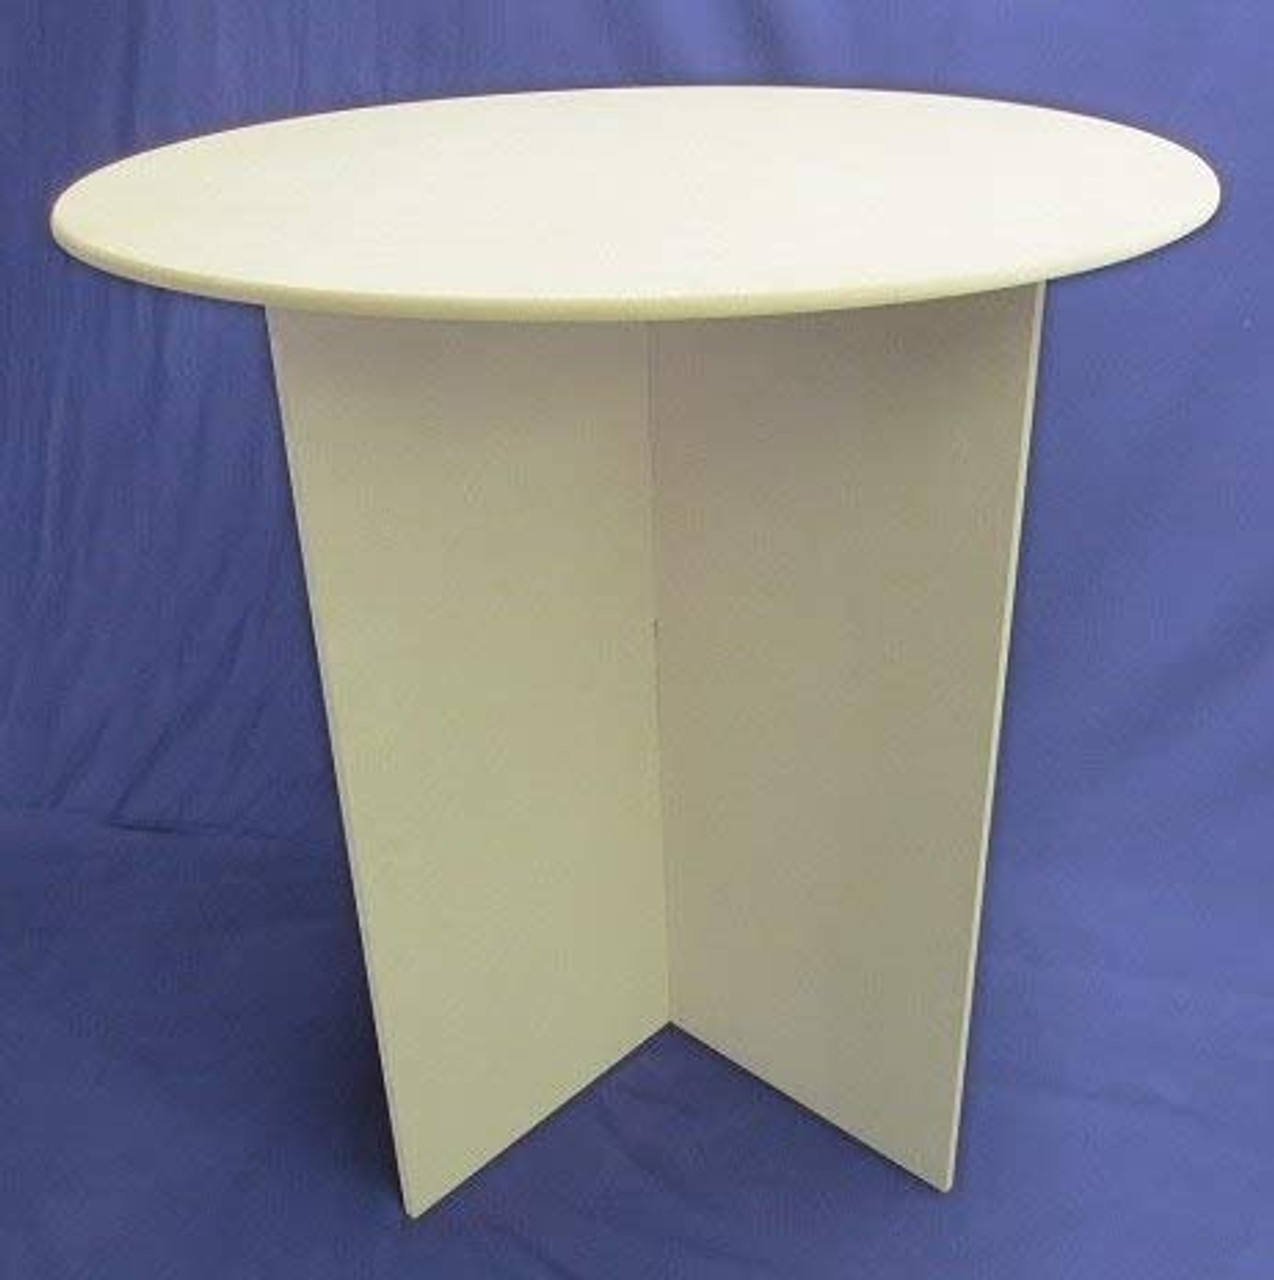 30 Inch Round Wooden Display Table